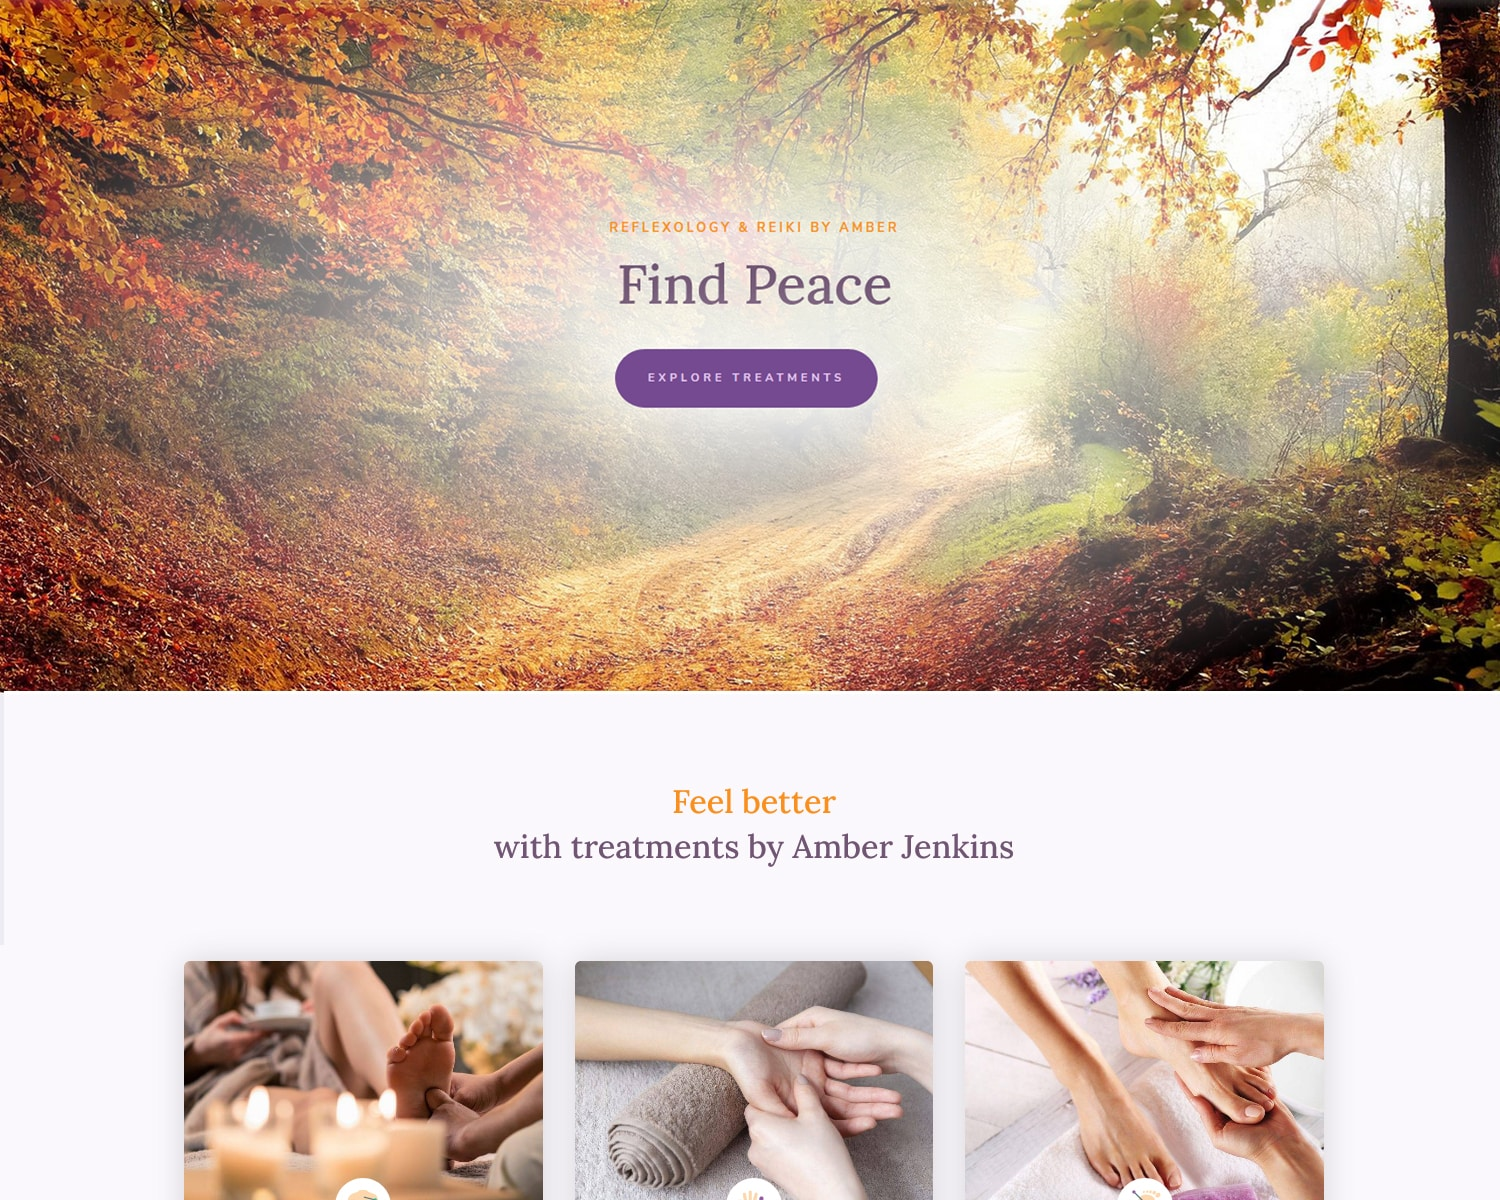 webpage website design for therapist business in Gourock